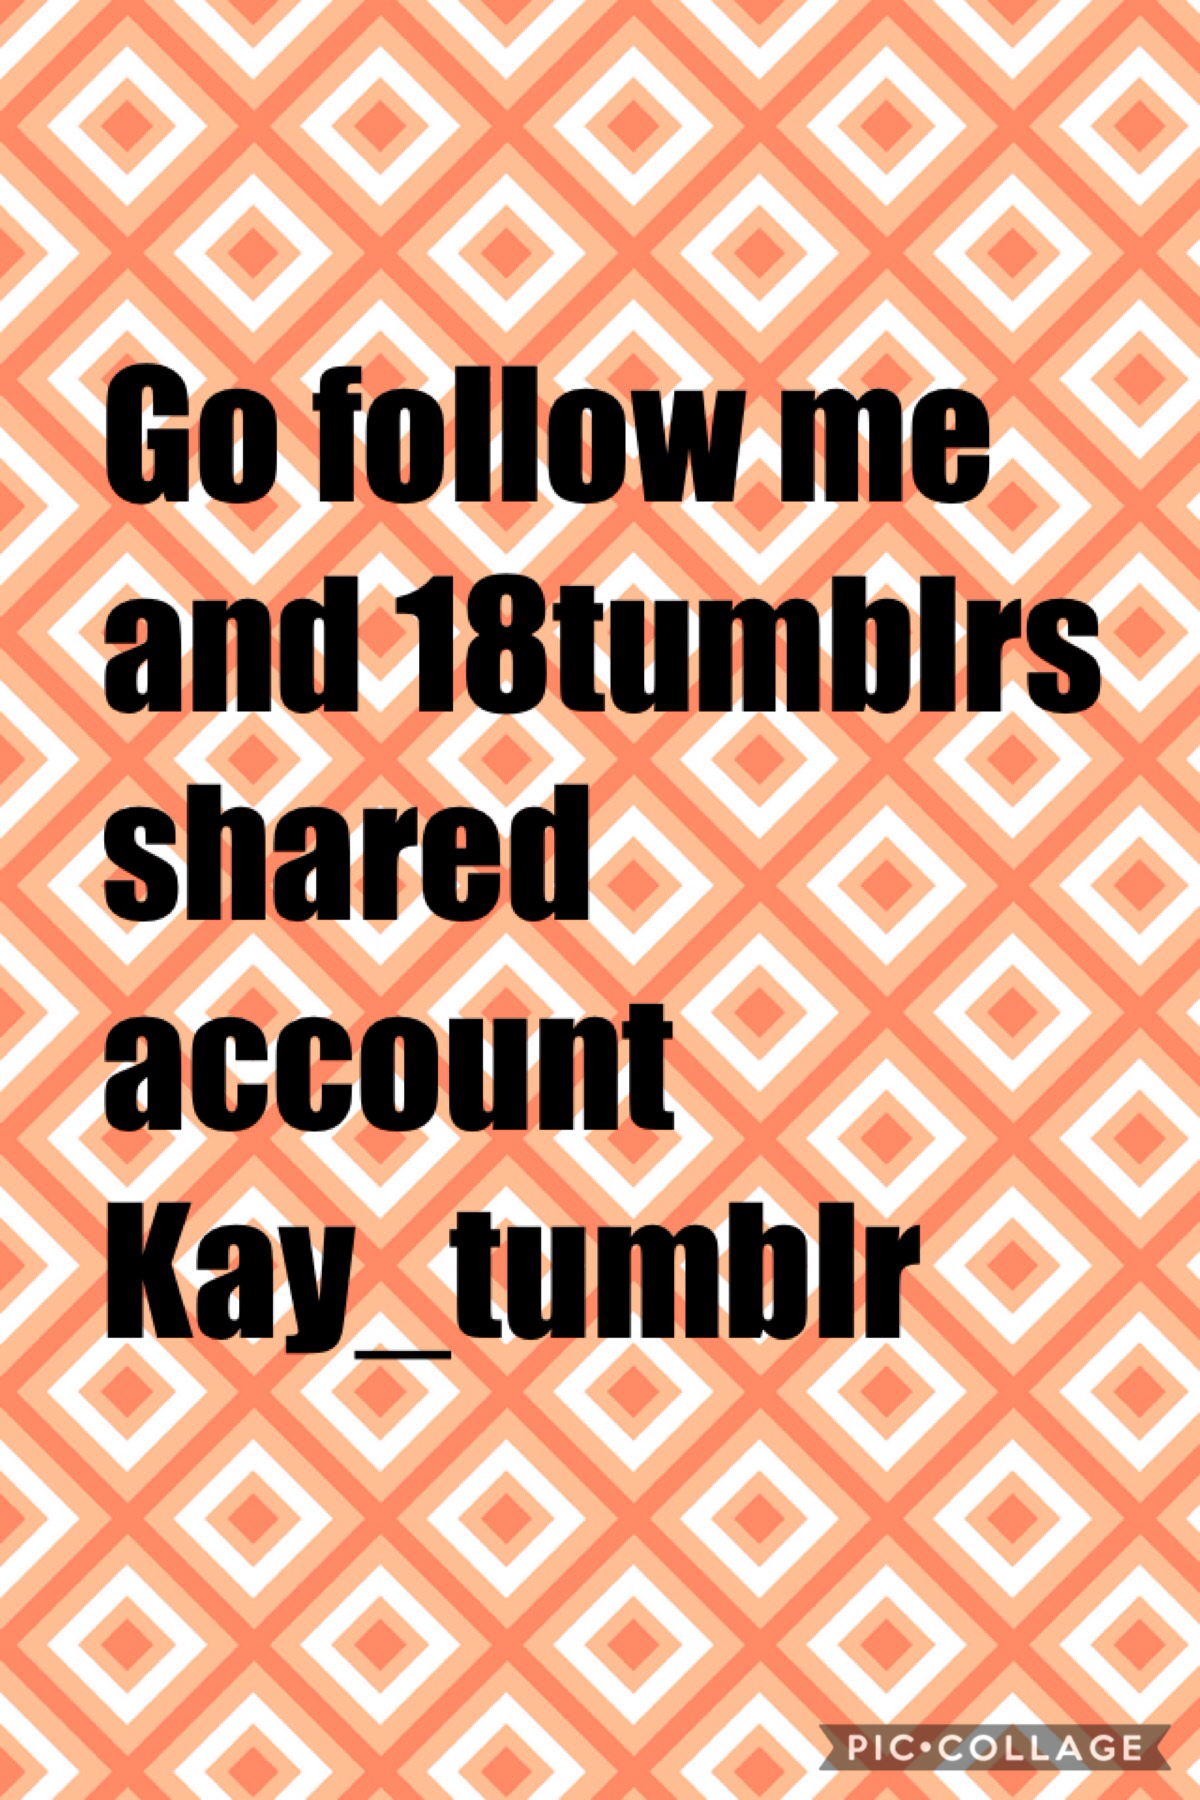 Go follow it and don't forget to also follow 18tumblr she's so sweet and amazing